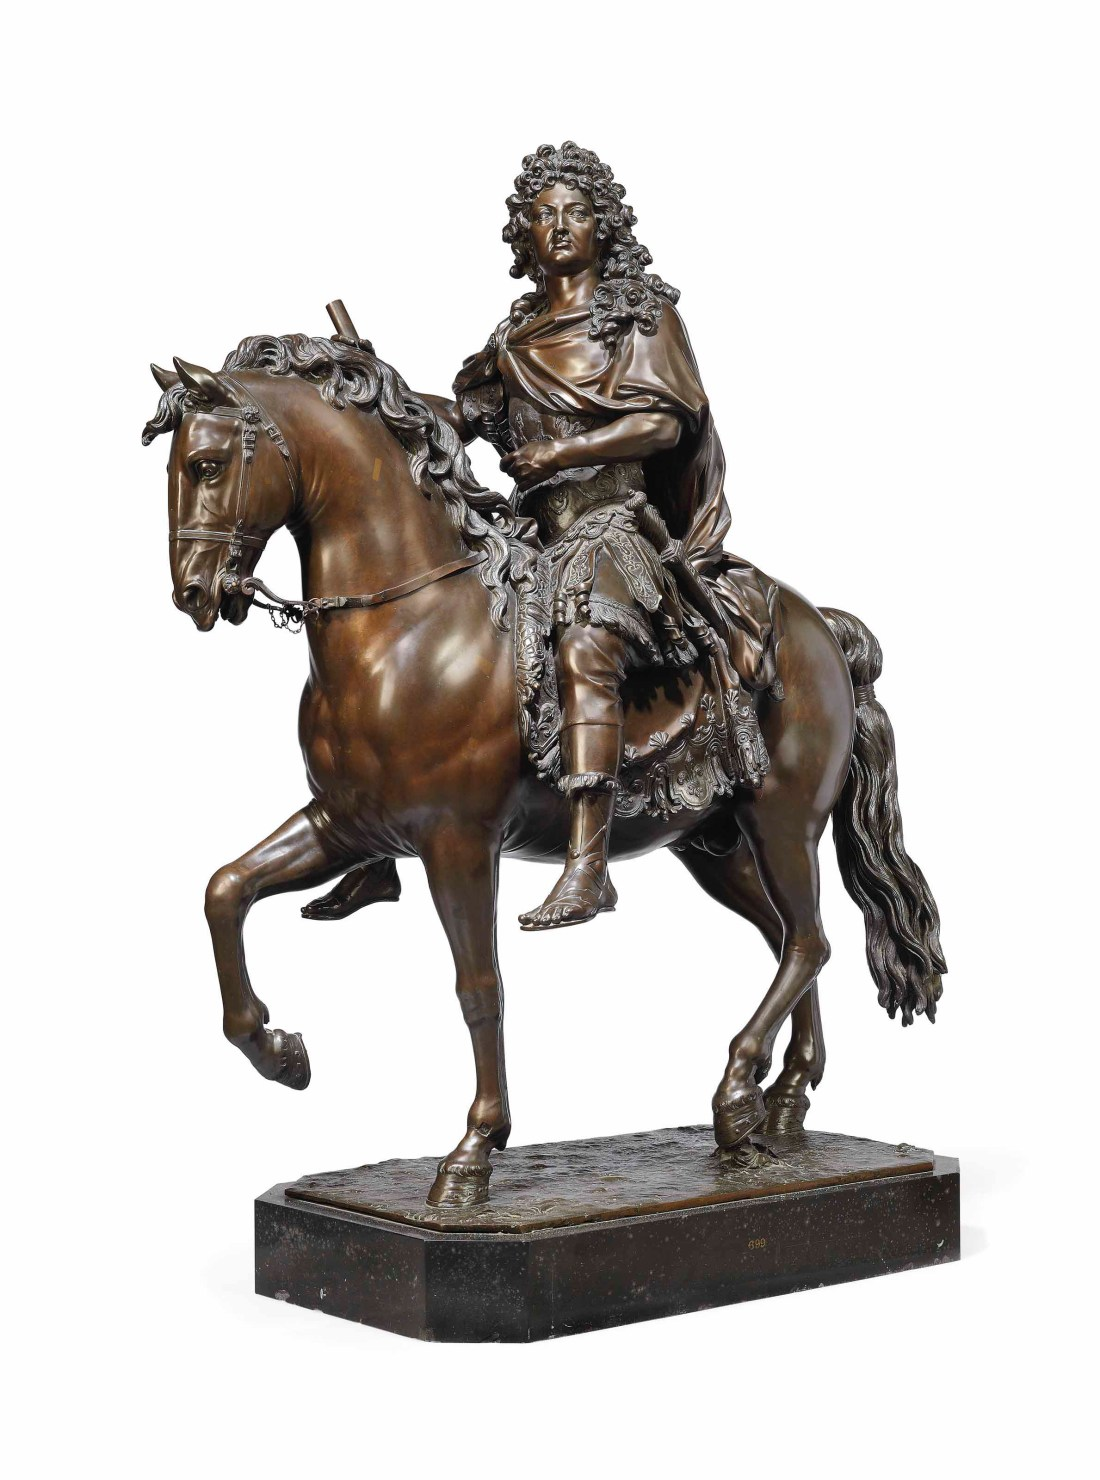 A bronze group of Louis XIV on horseback, created between 1690 and 1699 by François Girardon. Christie's estimates it at £7 million to £10 million ($9.1 million to $13.1 million).